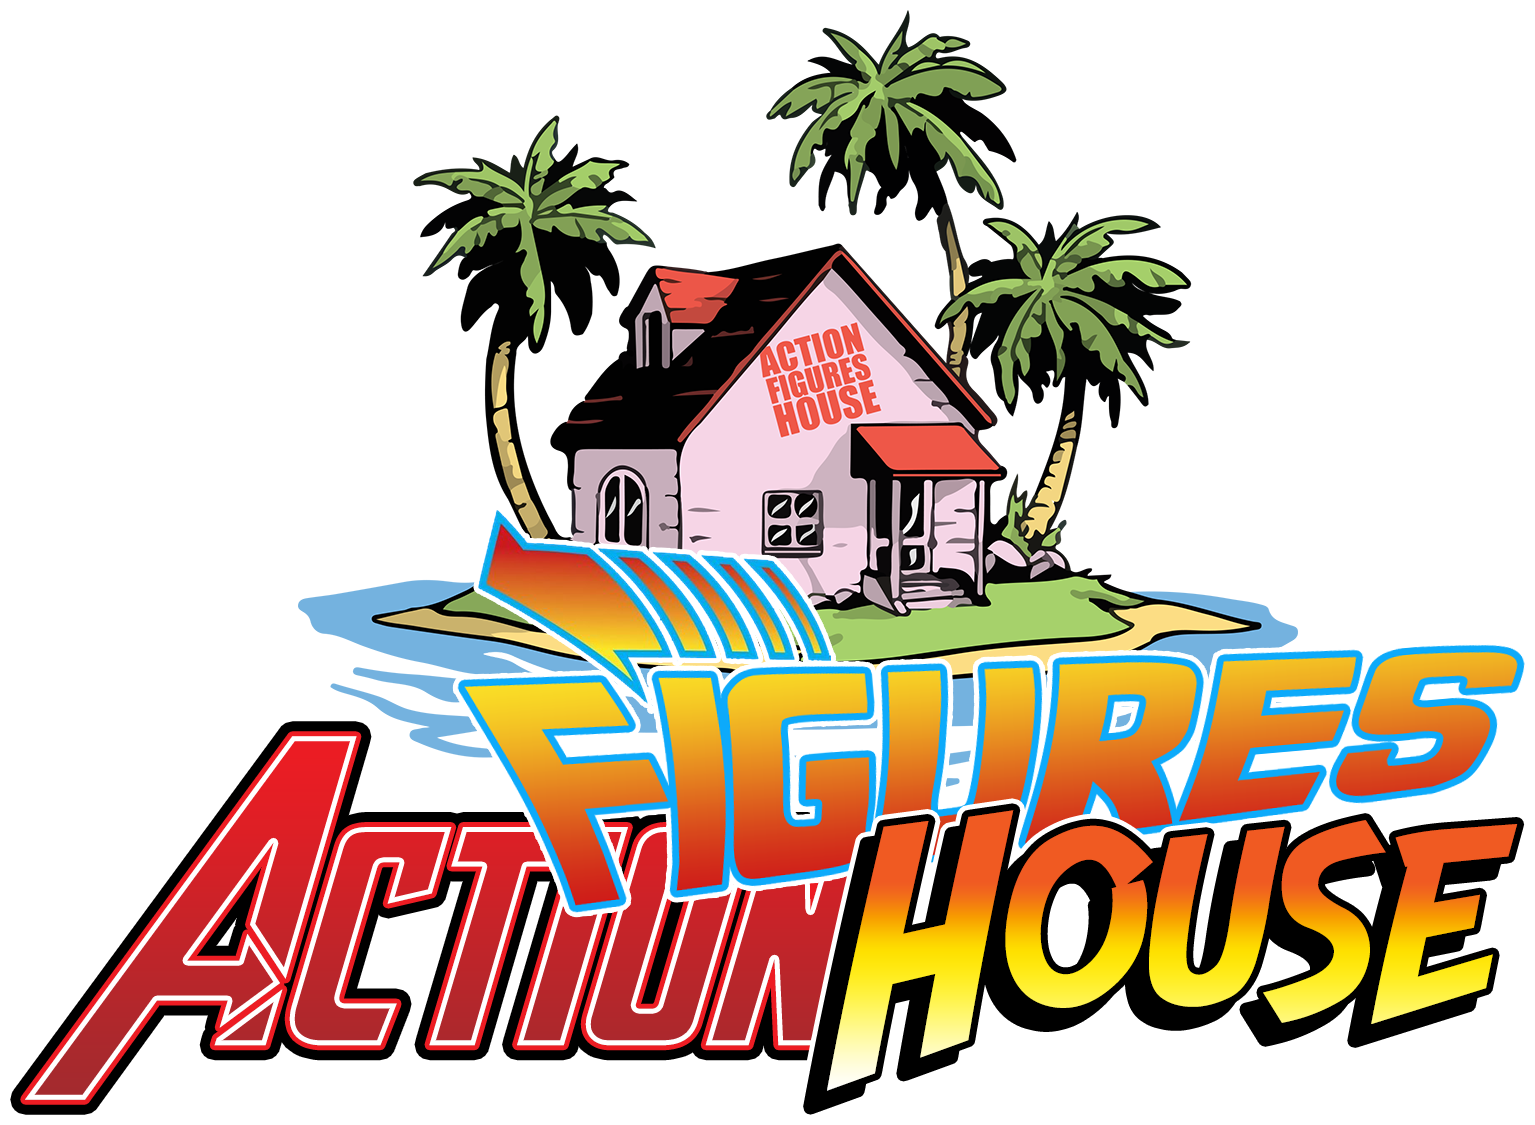 ActionFiguresHouse.it